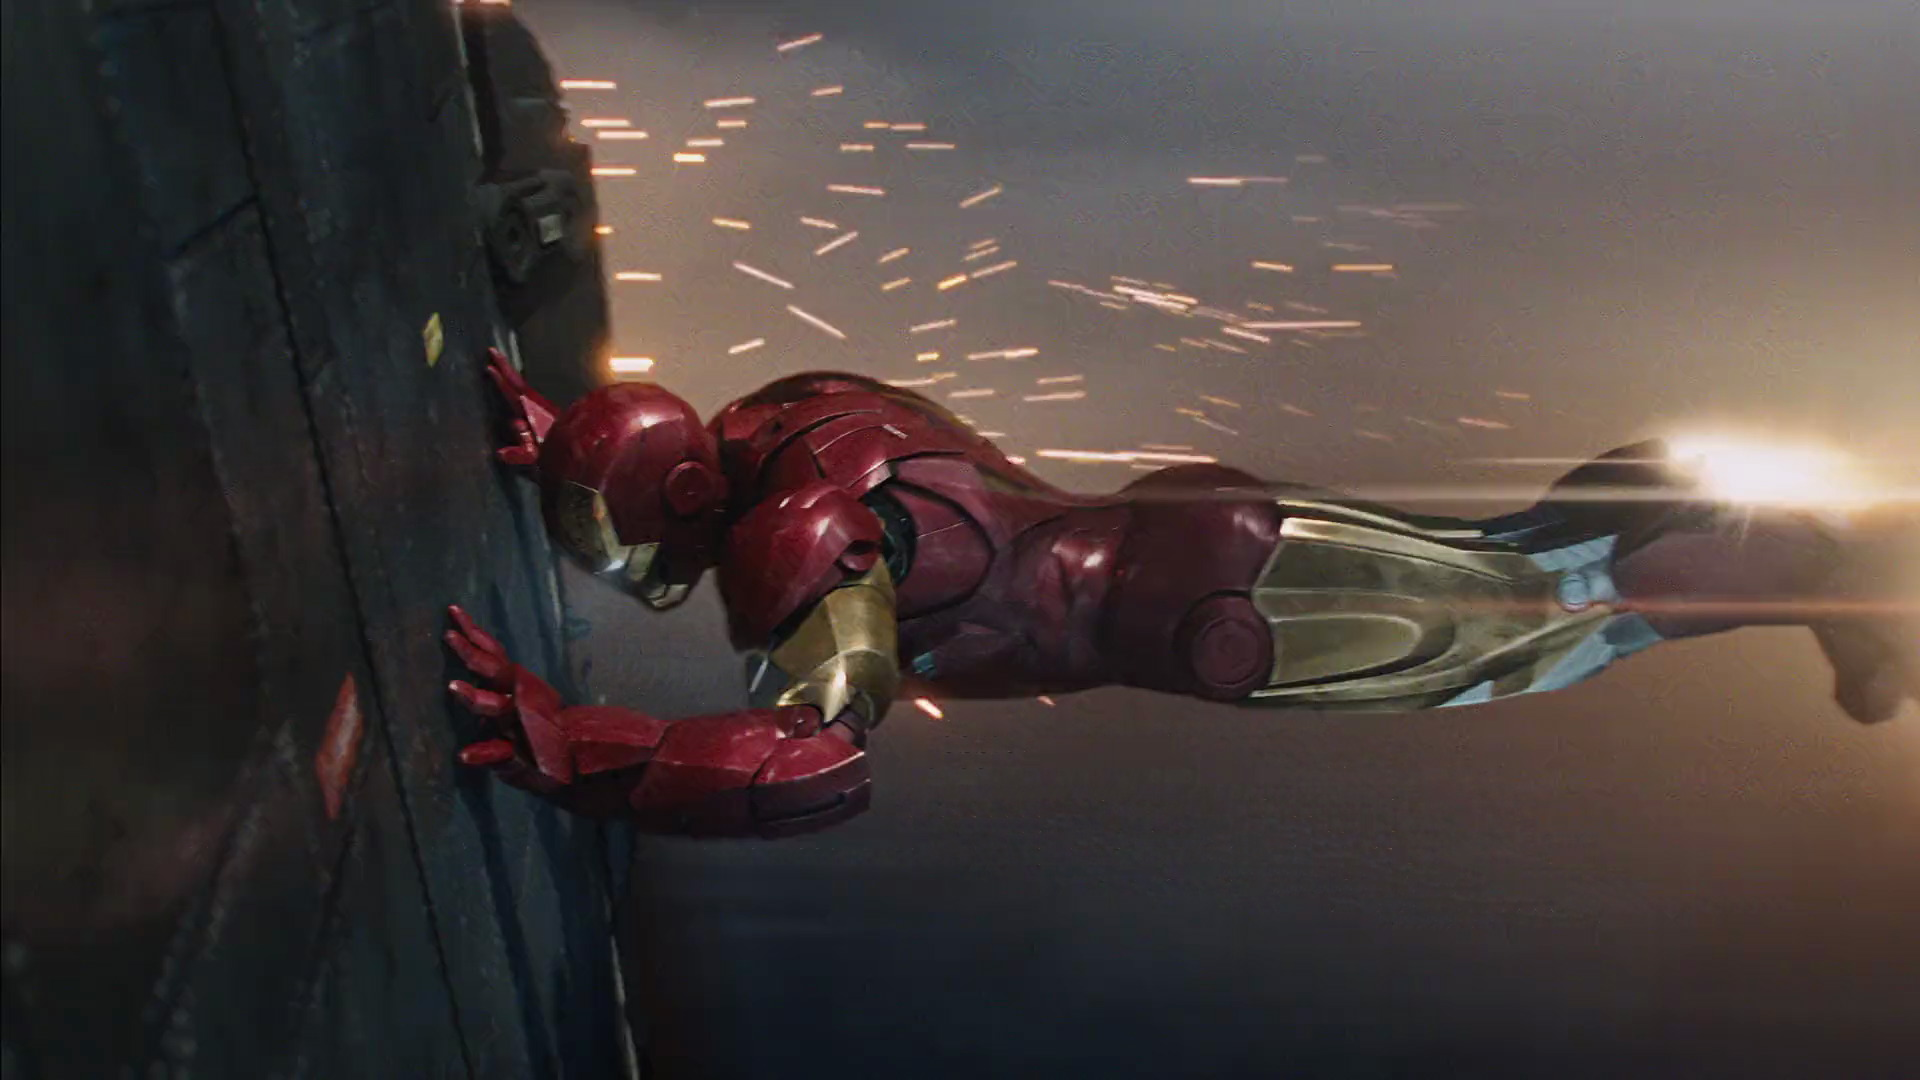 http://www.caps.media/201/2-avengers/full/avengers-movie-screencaps.com-10297.jpg